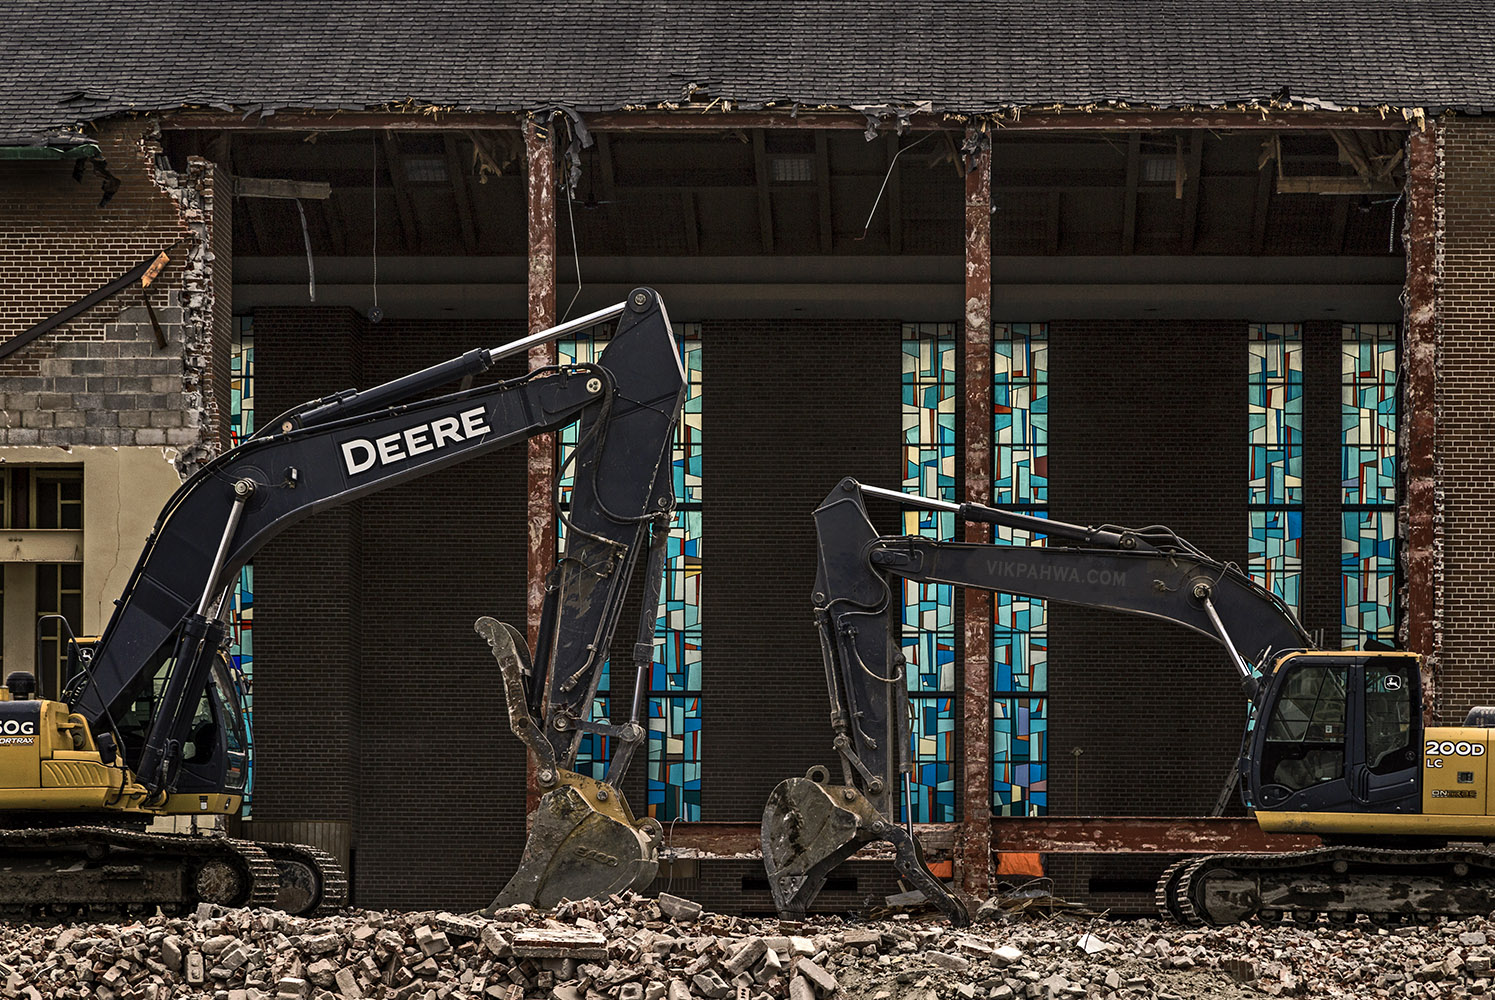 20170217. Excavators and stained glass windows, together for a s